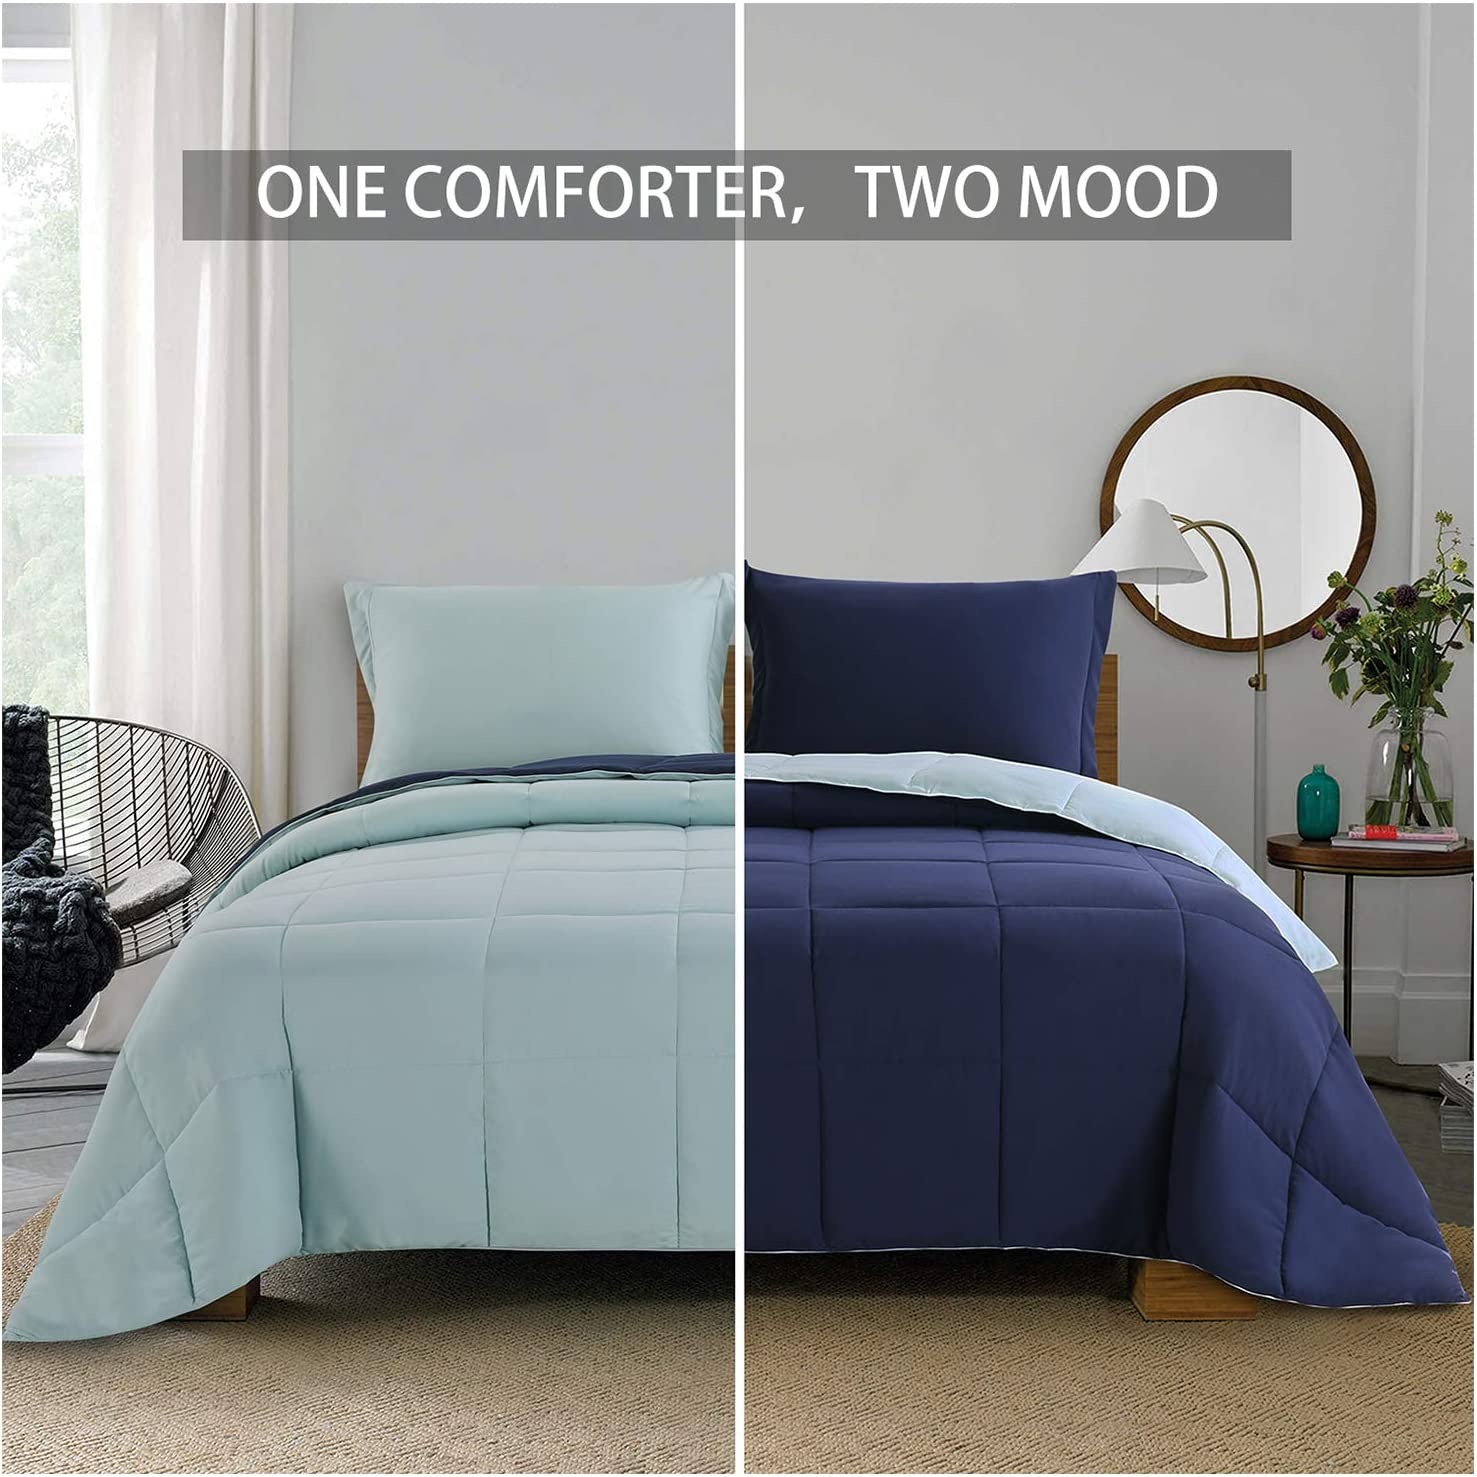 Homelike Moment Lightweight Comforter Set - Queen Navy Blue All Season Down Alternative Comforter Set Summer Duvet Insert 3 Piece - 1 Comforter with 2 Shams Reversible Full/Queen Size Navy/Light Blue